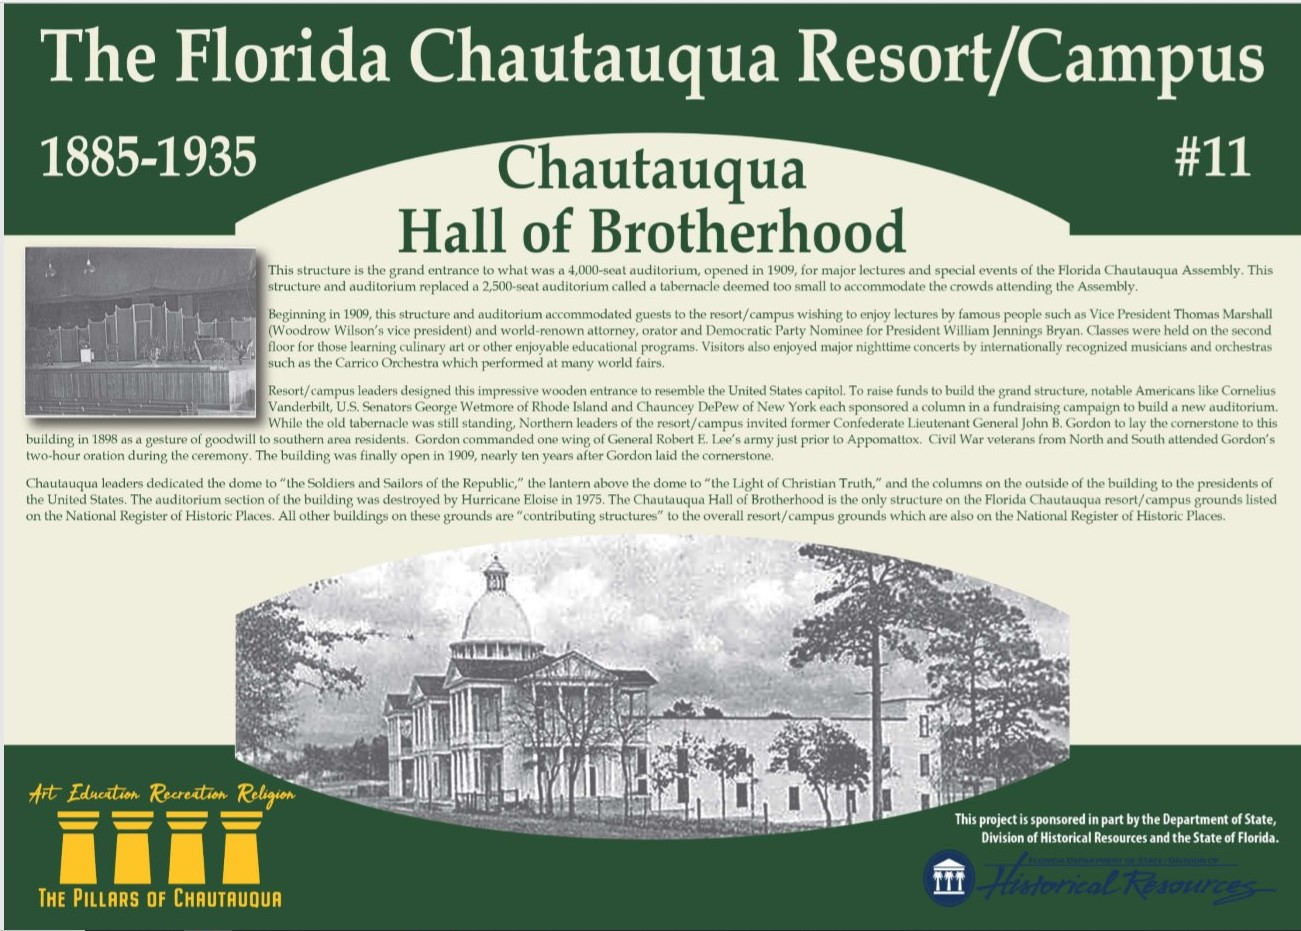 Sign with information about the history of the Chautauqua Hall of Brotherhood